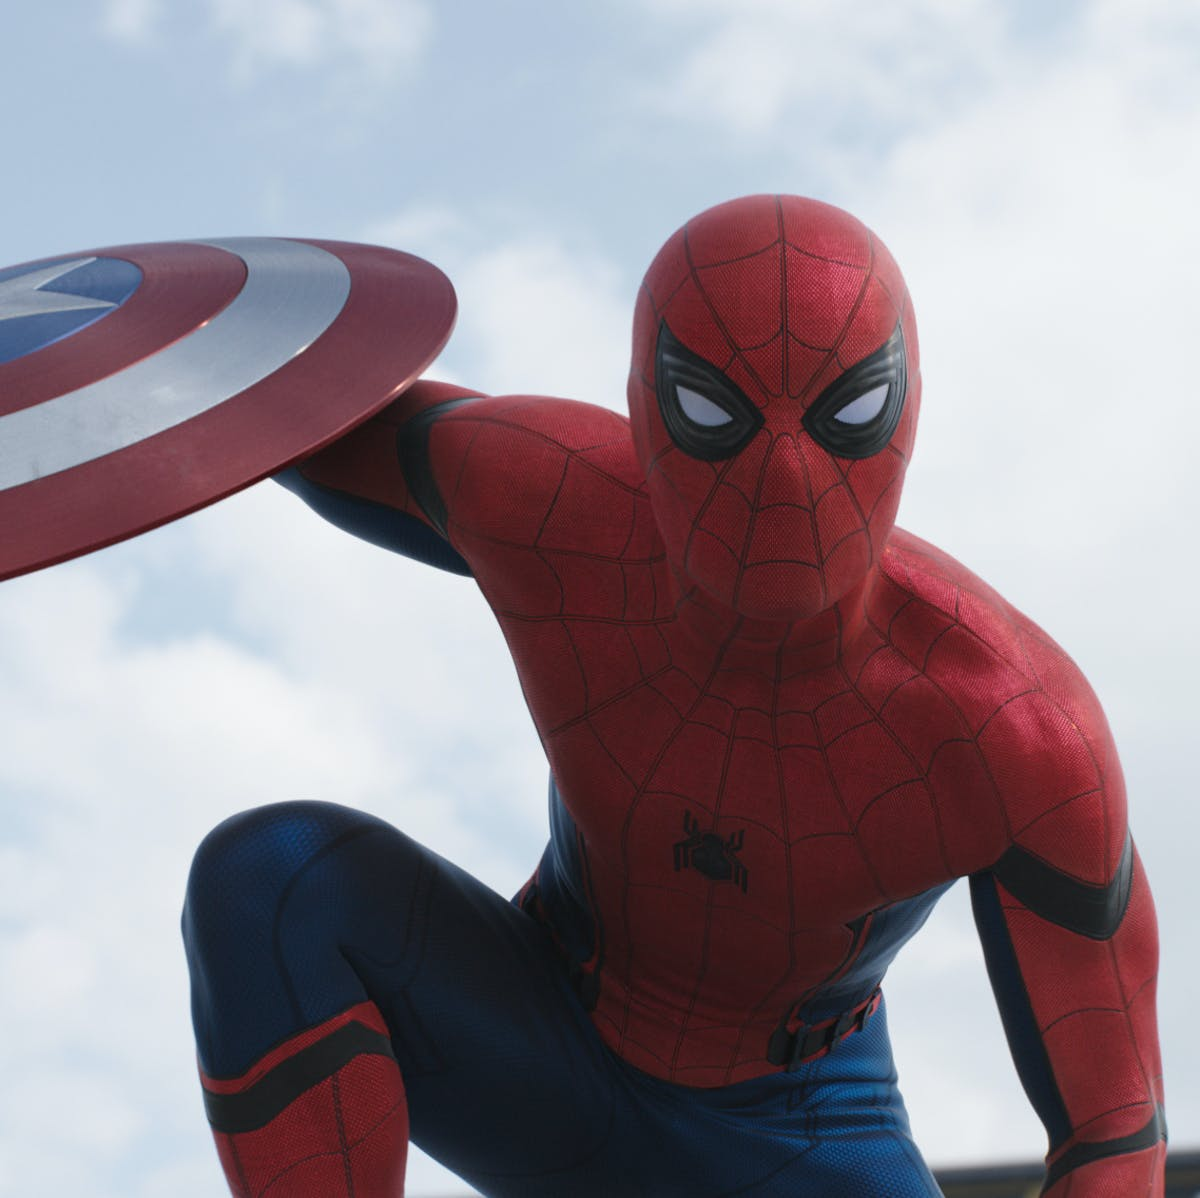 'Spider-Man' back in MCU: Here's what it means for 'Avengers 5'